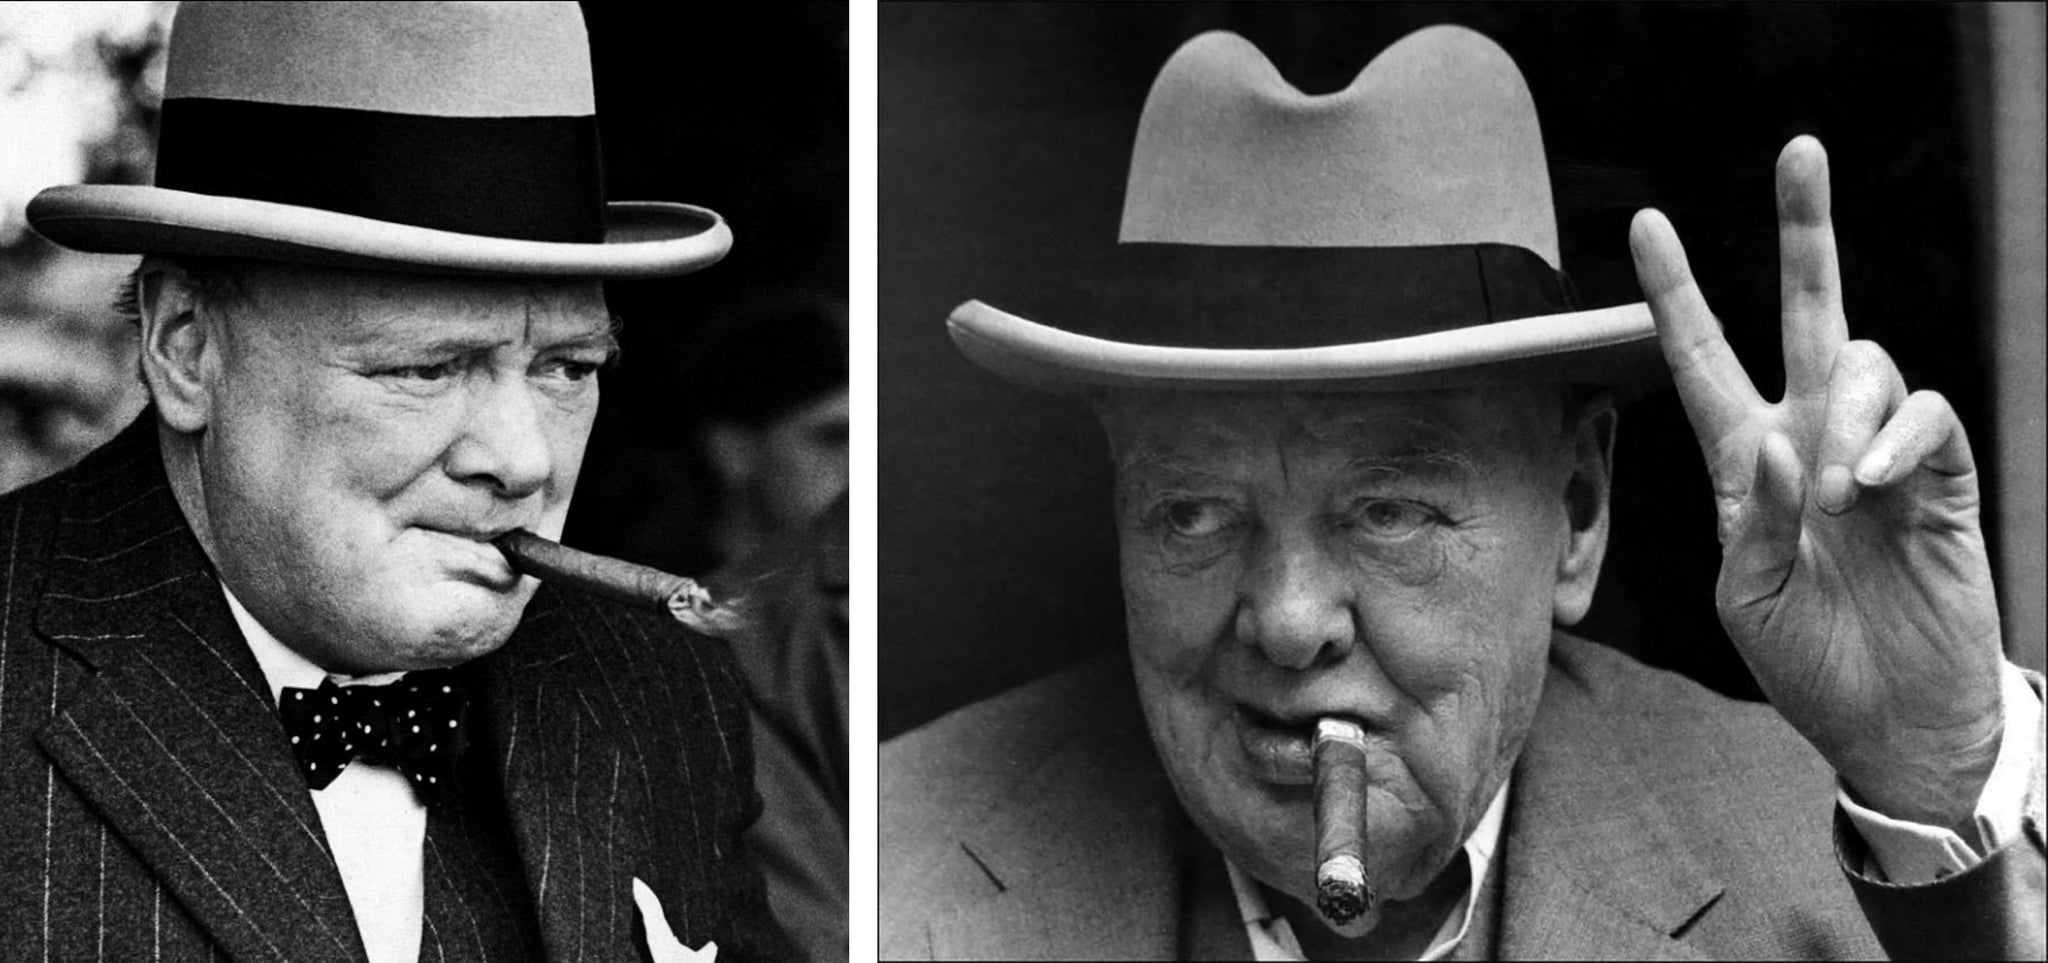 winston churchill smoking cuban cigars EGM Cigars